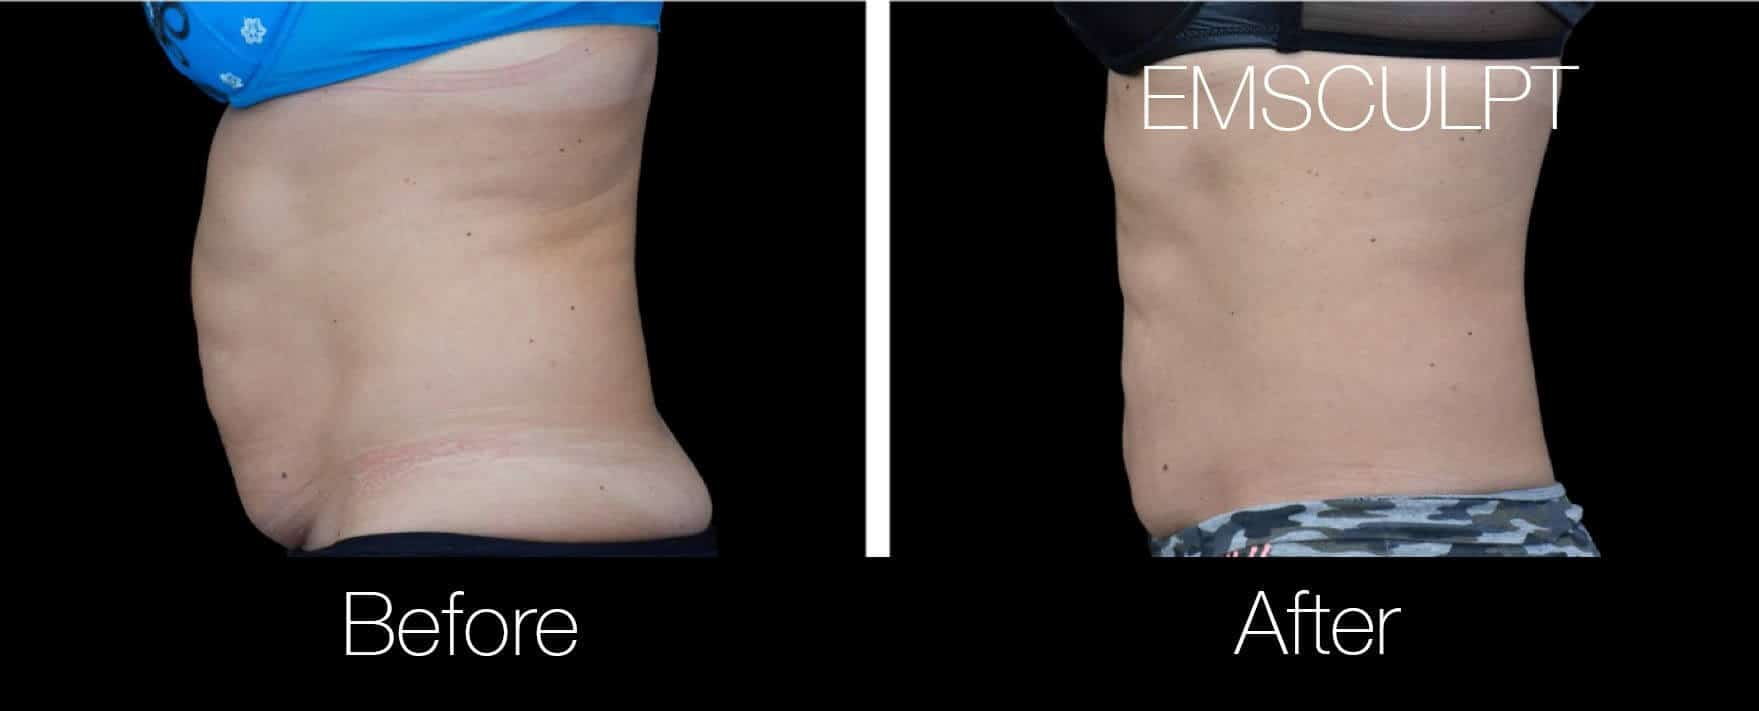 Emsculpt - Before and After Gallery – Photo 1